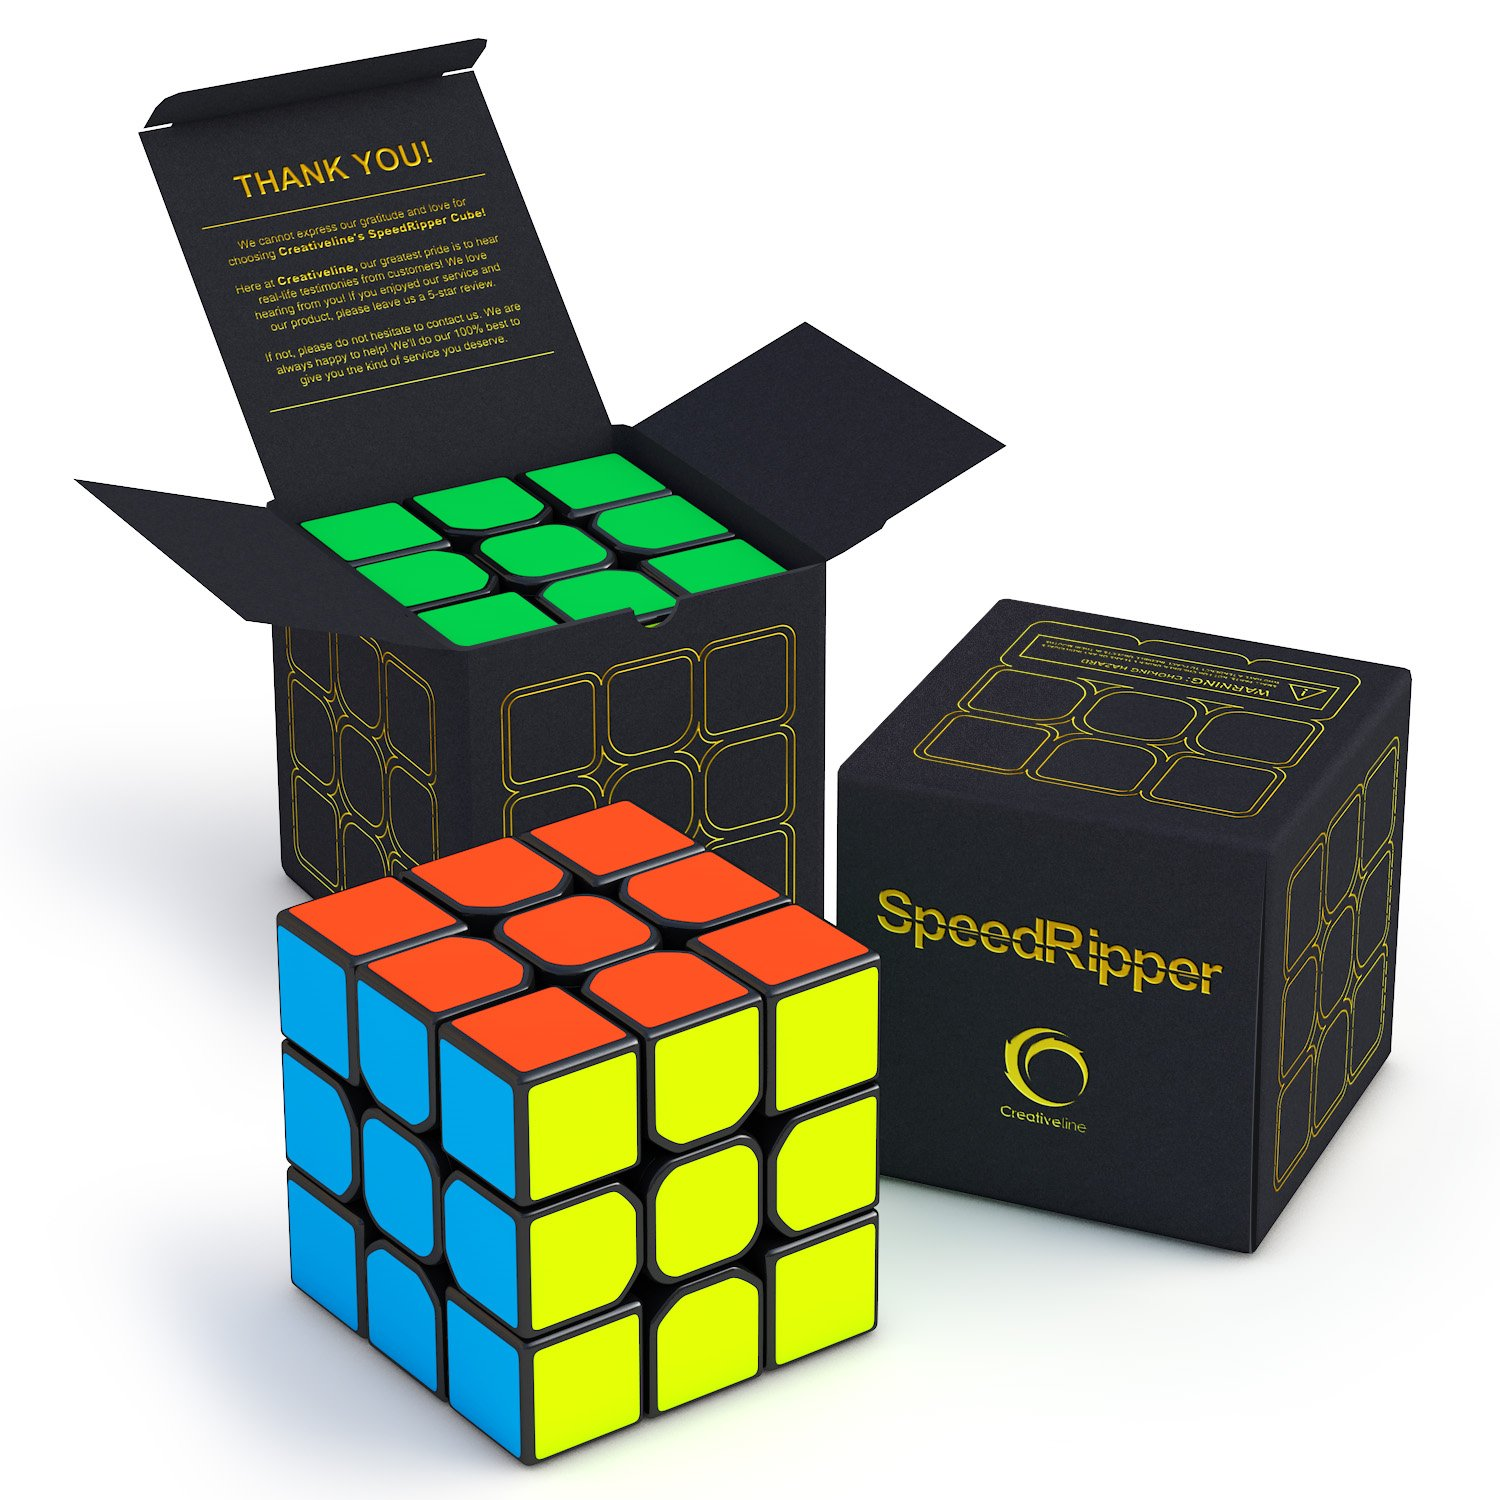 CreativeLine SpeedRipper Cube: Perfect for International Speed Cube Competitions - Buttery Smooth Turning - Solid & Durable, Best 3x3 Puzzle Magic Toy - Turns Quicker Than Original by CreativeLine